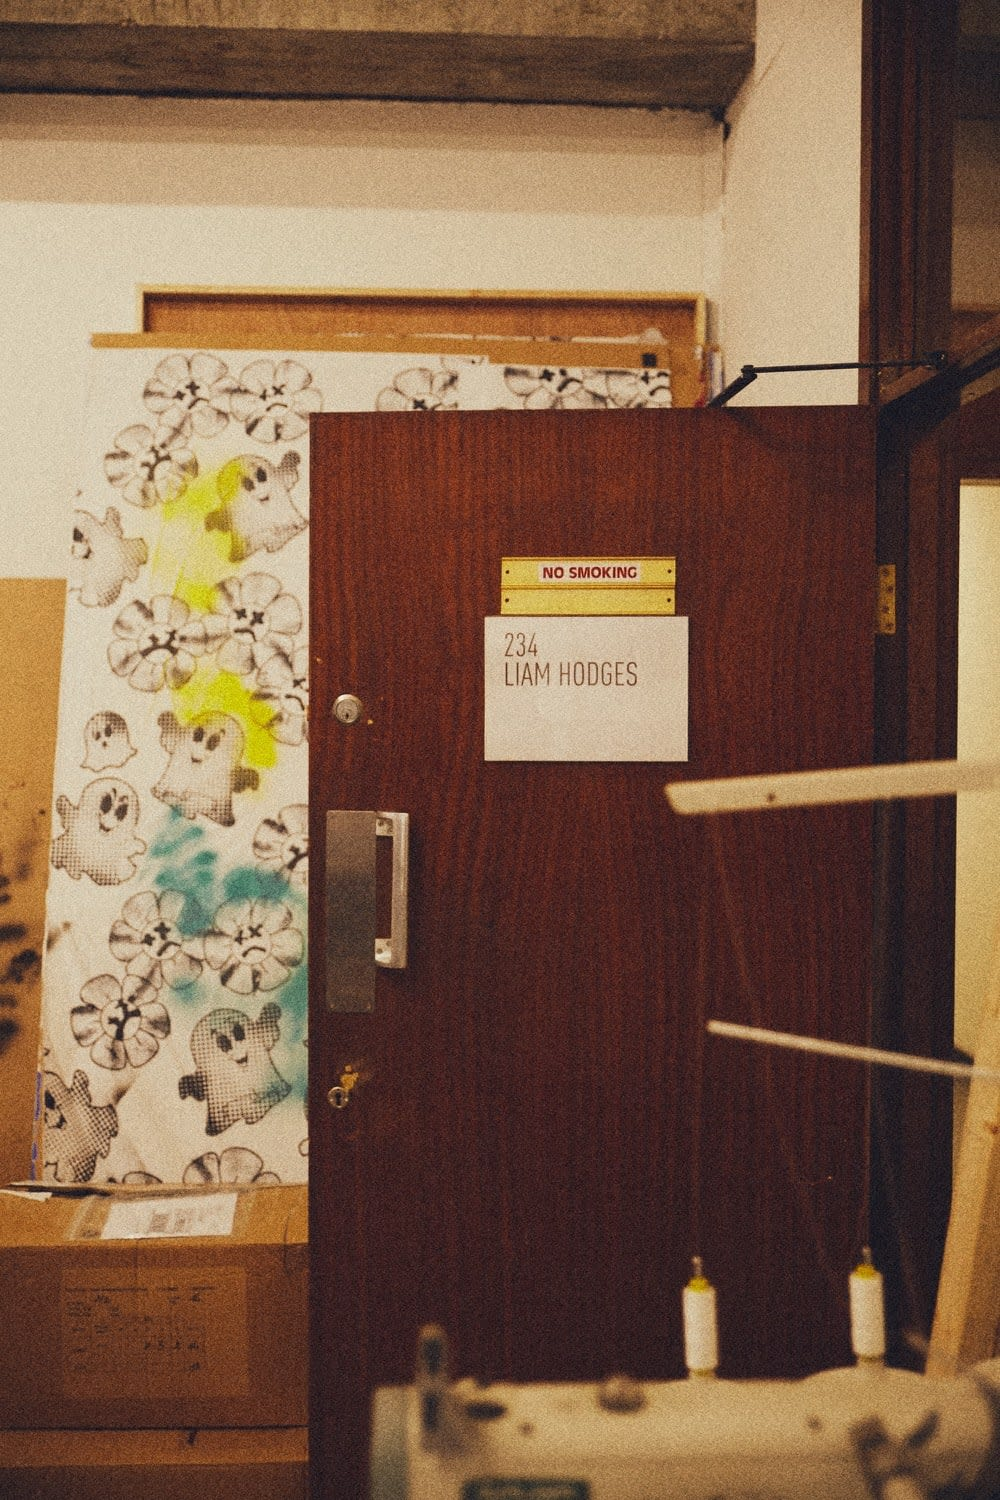 The door to Liam Hodges studio in London